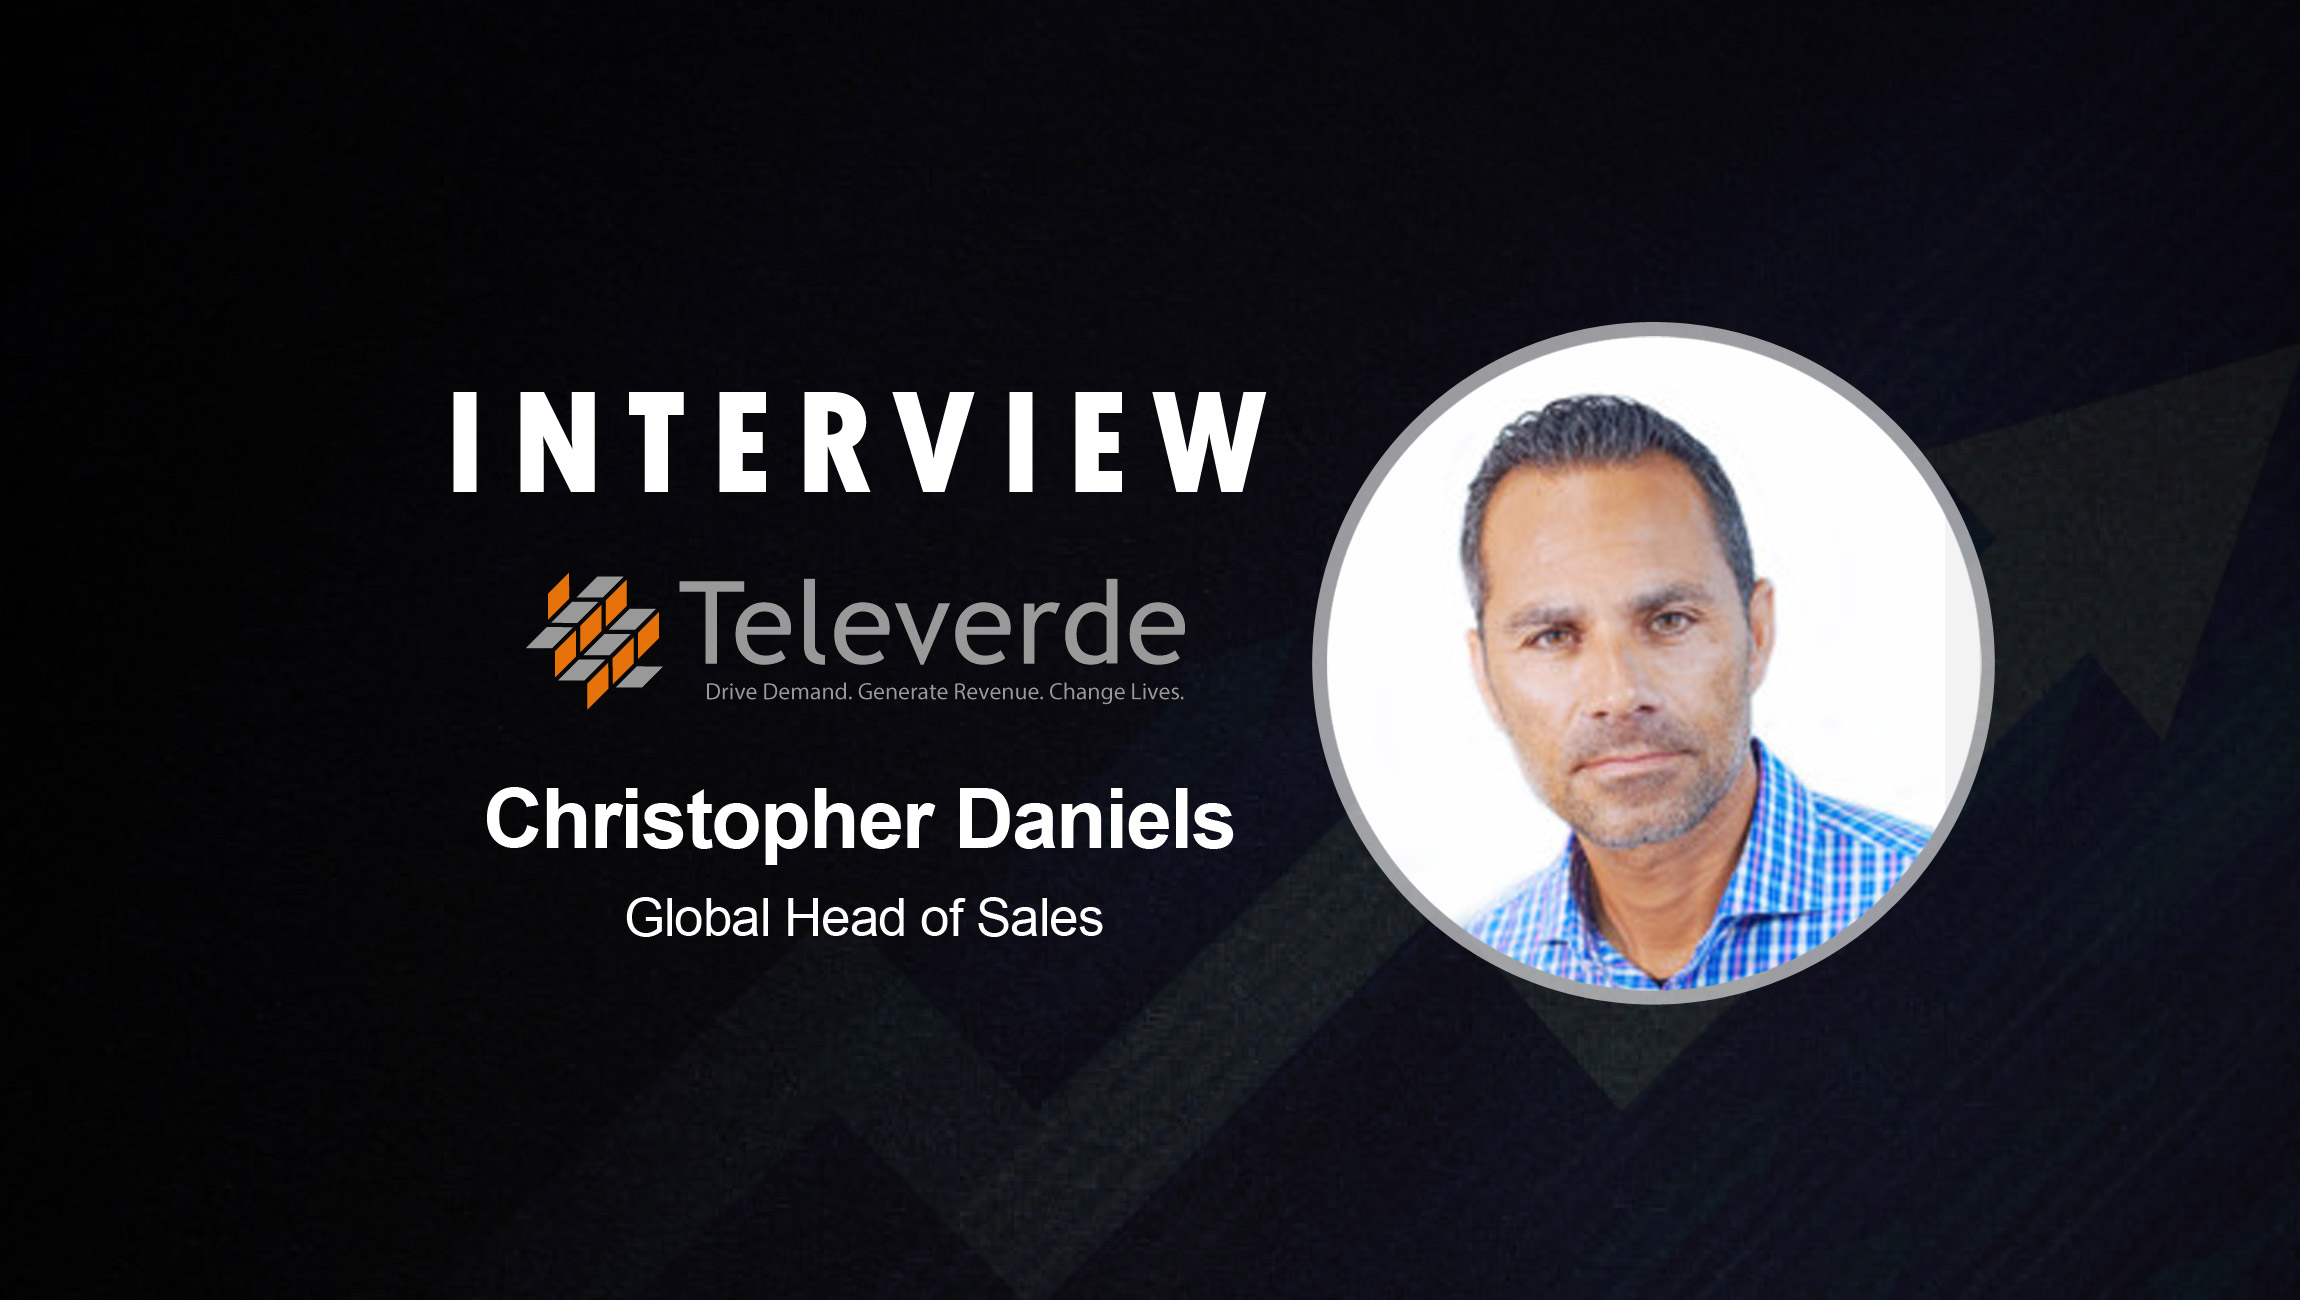 SalesTechStar Interview with Christopher Daniels, Global Head of Sales at Televerde